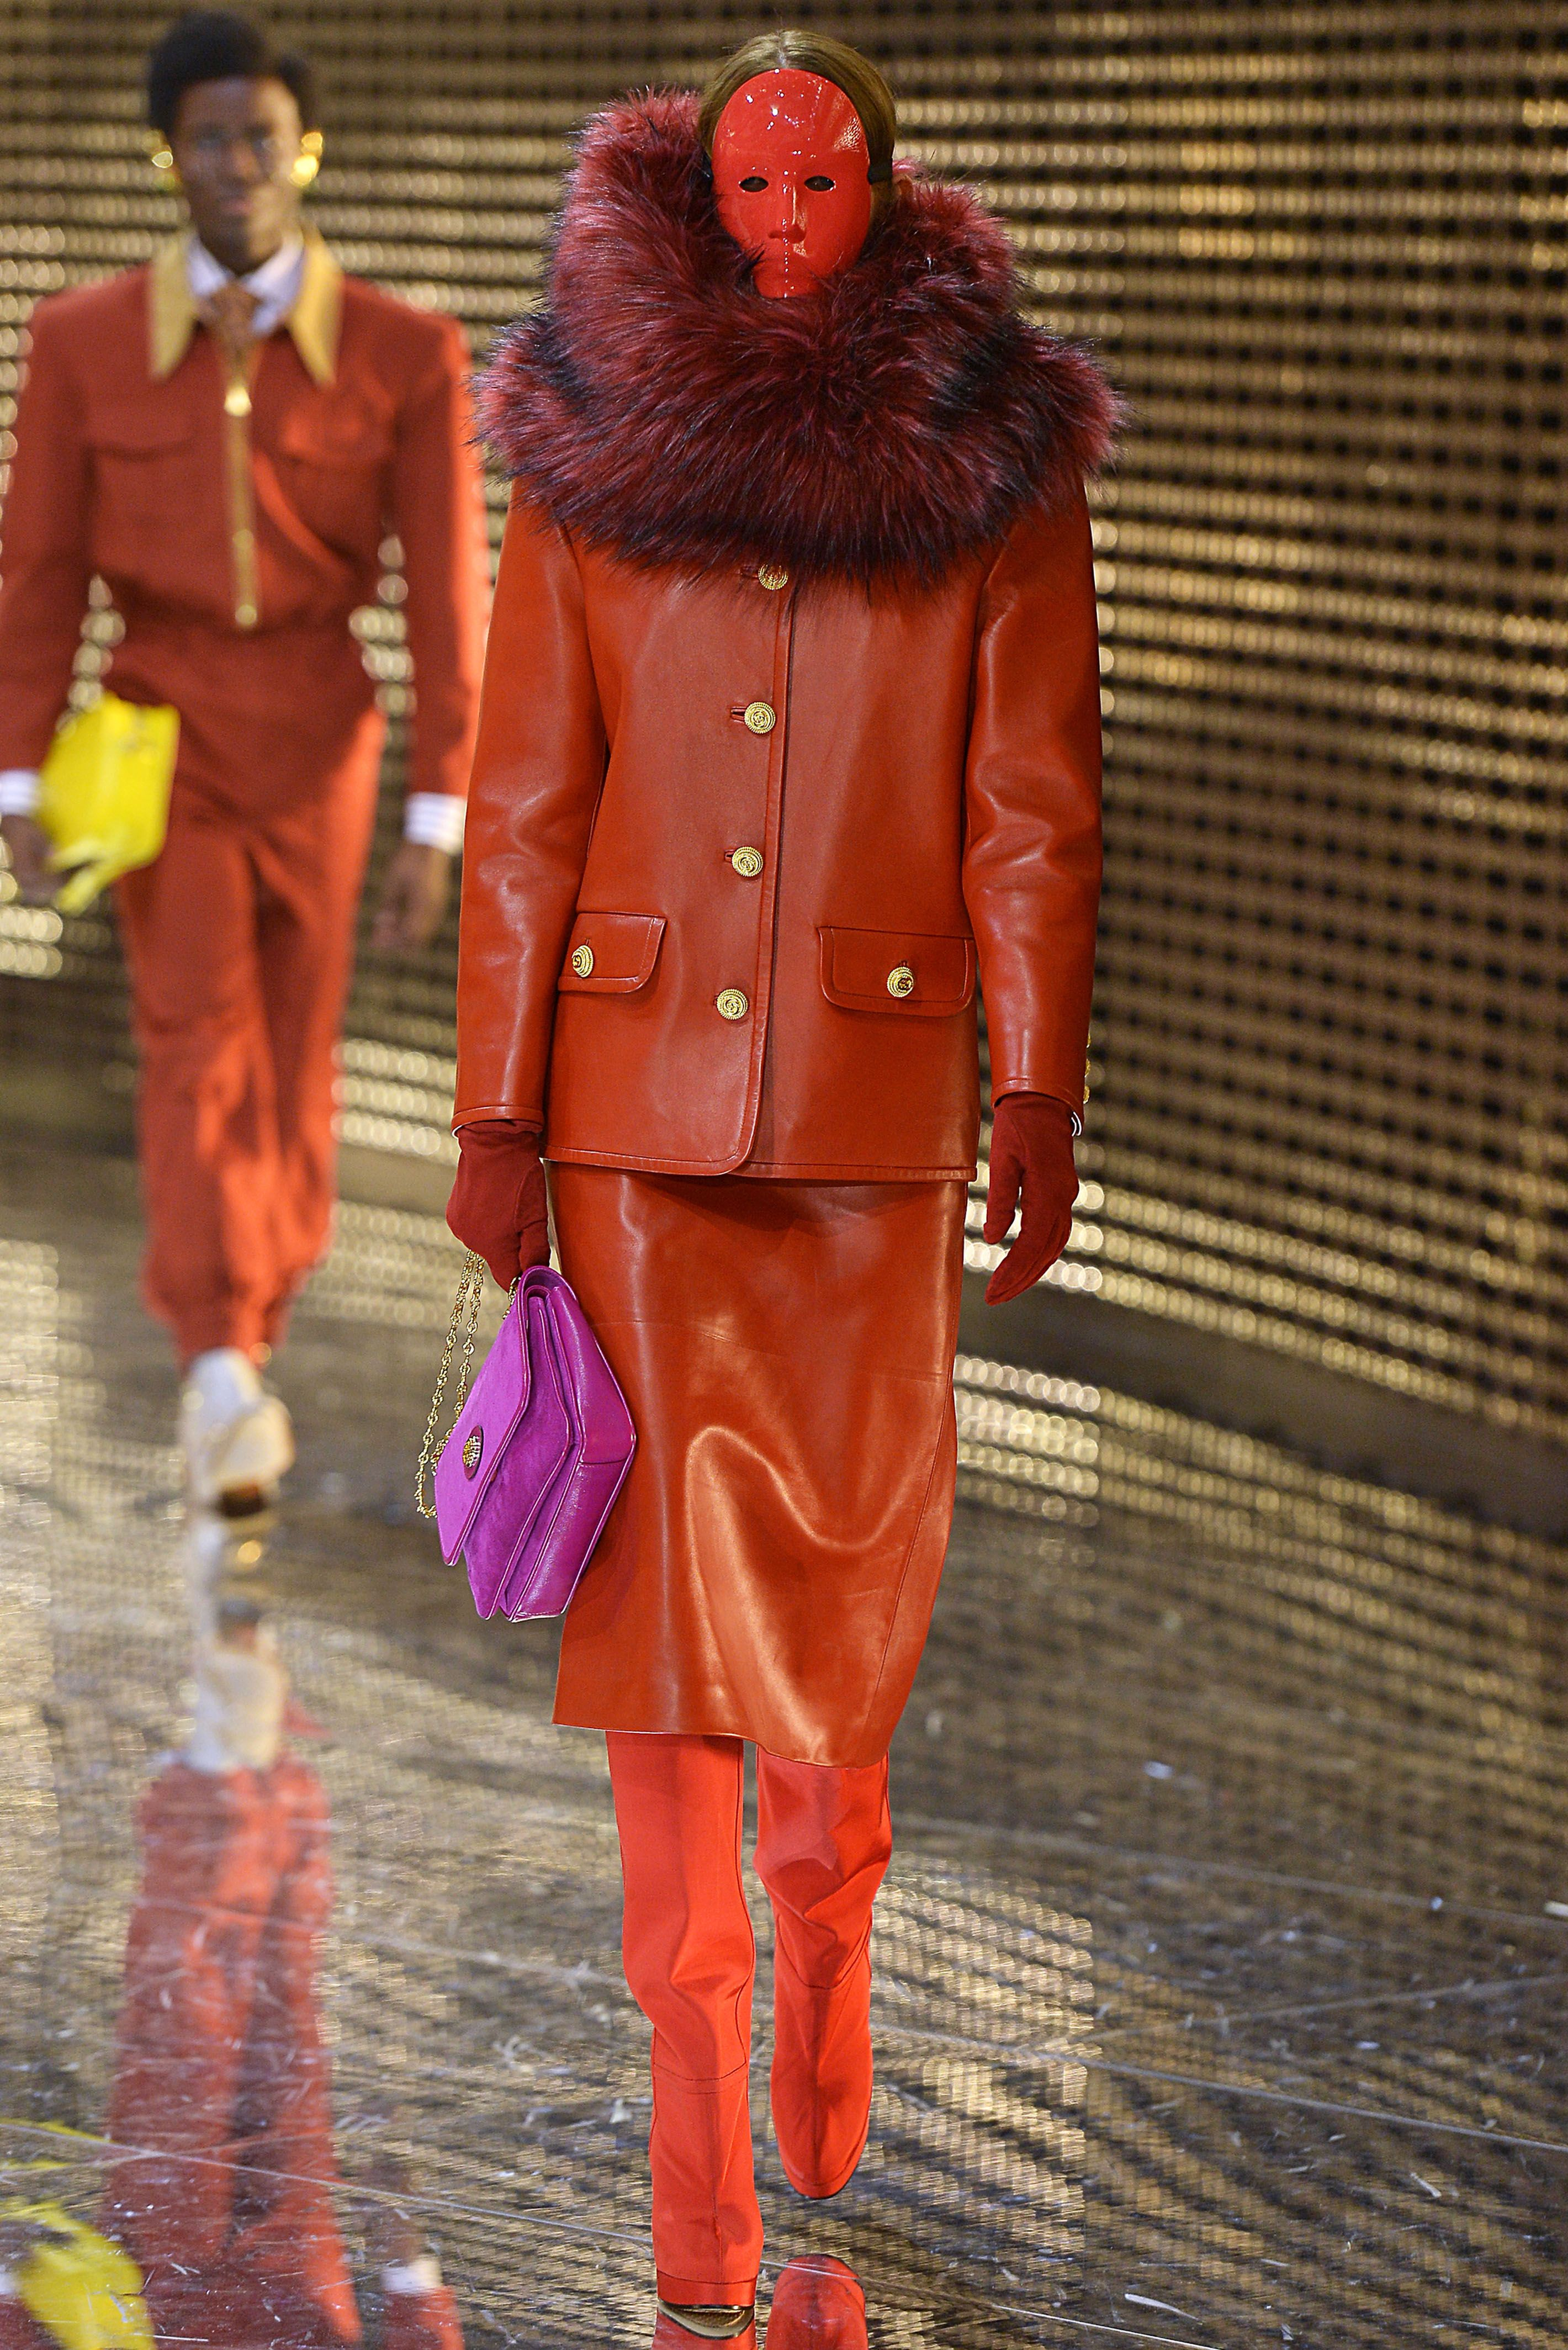 GUCCI / Fall 2019 / Milan Fetishwear, Fashion collection